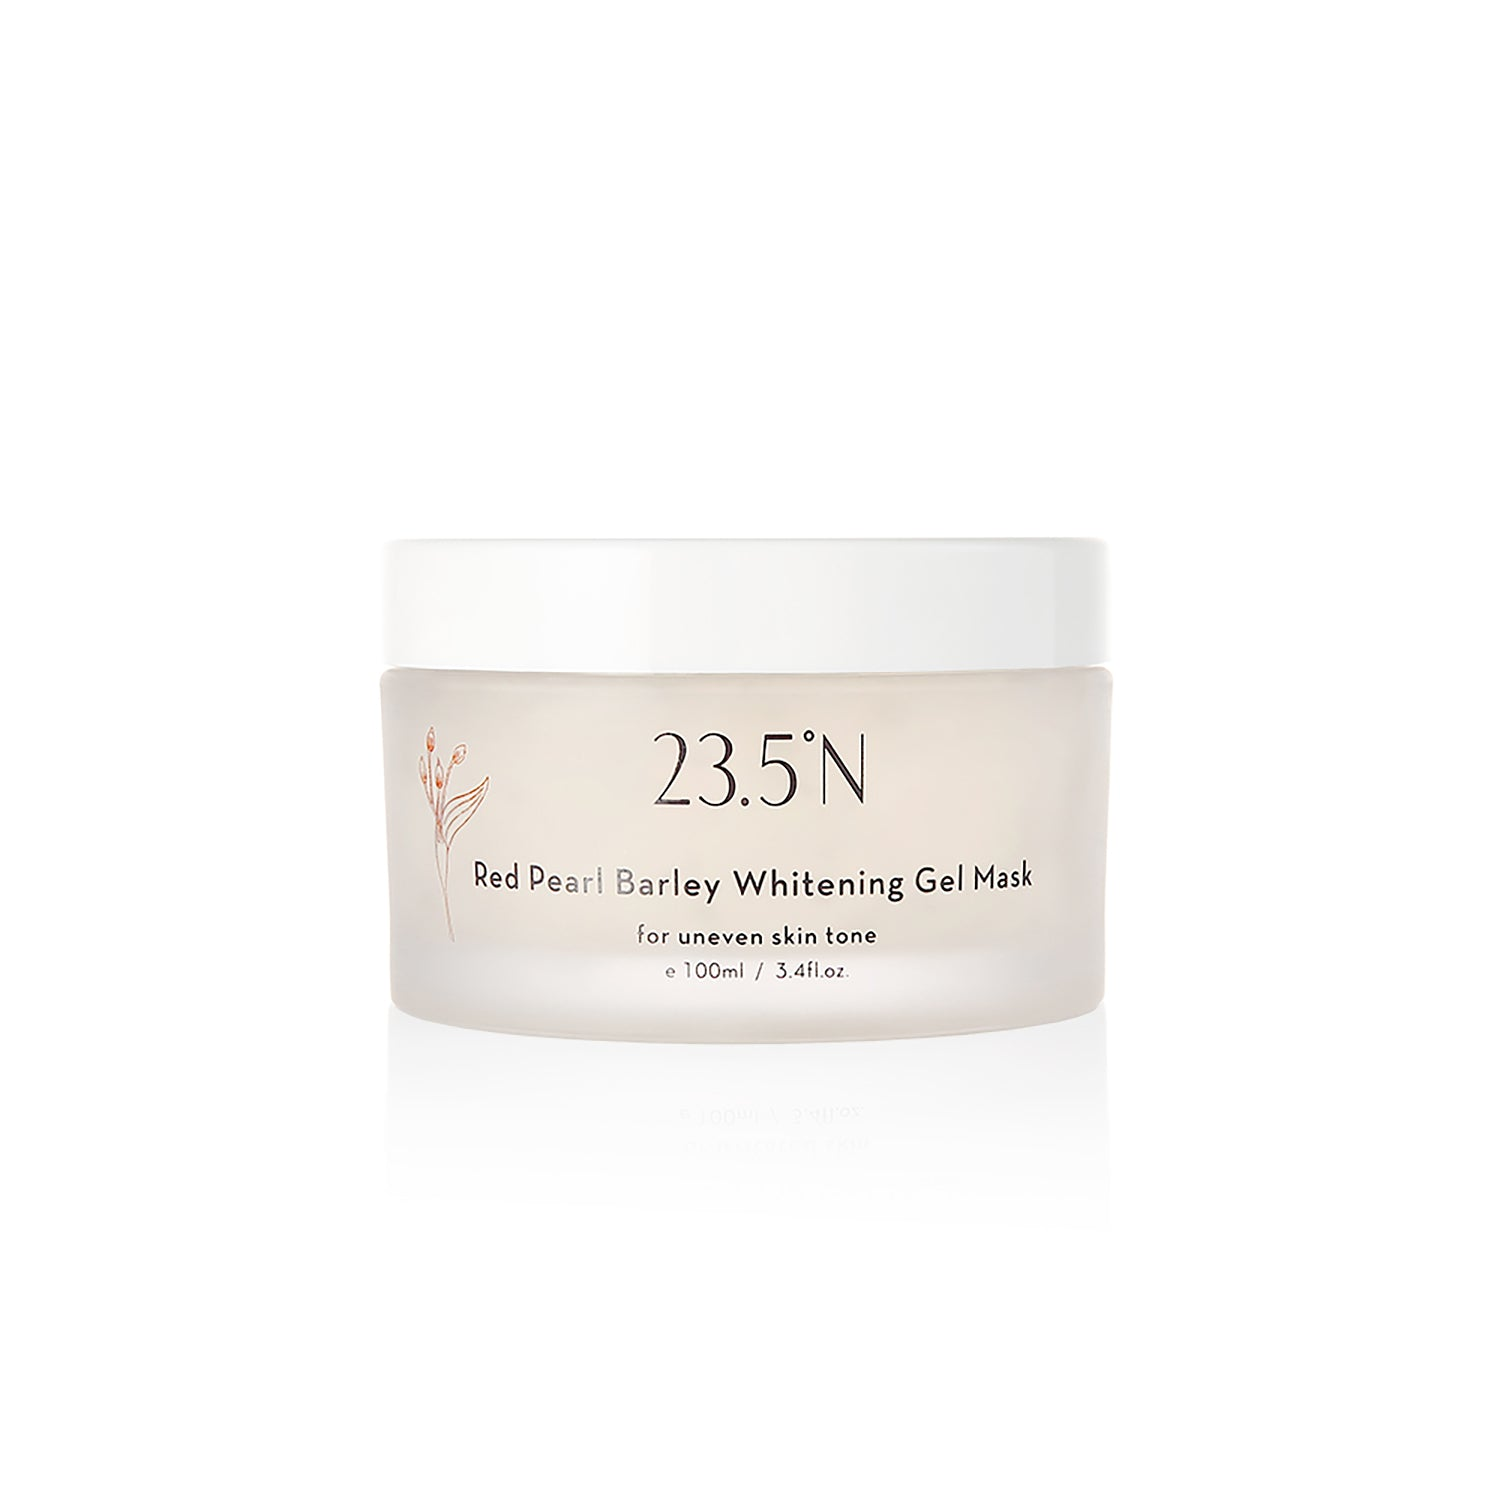 Red Pearl Barley Whitening Gel Mask